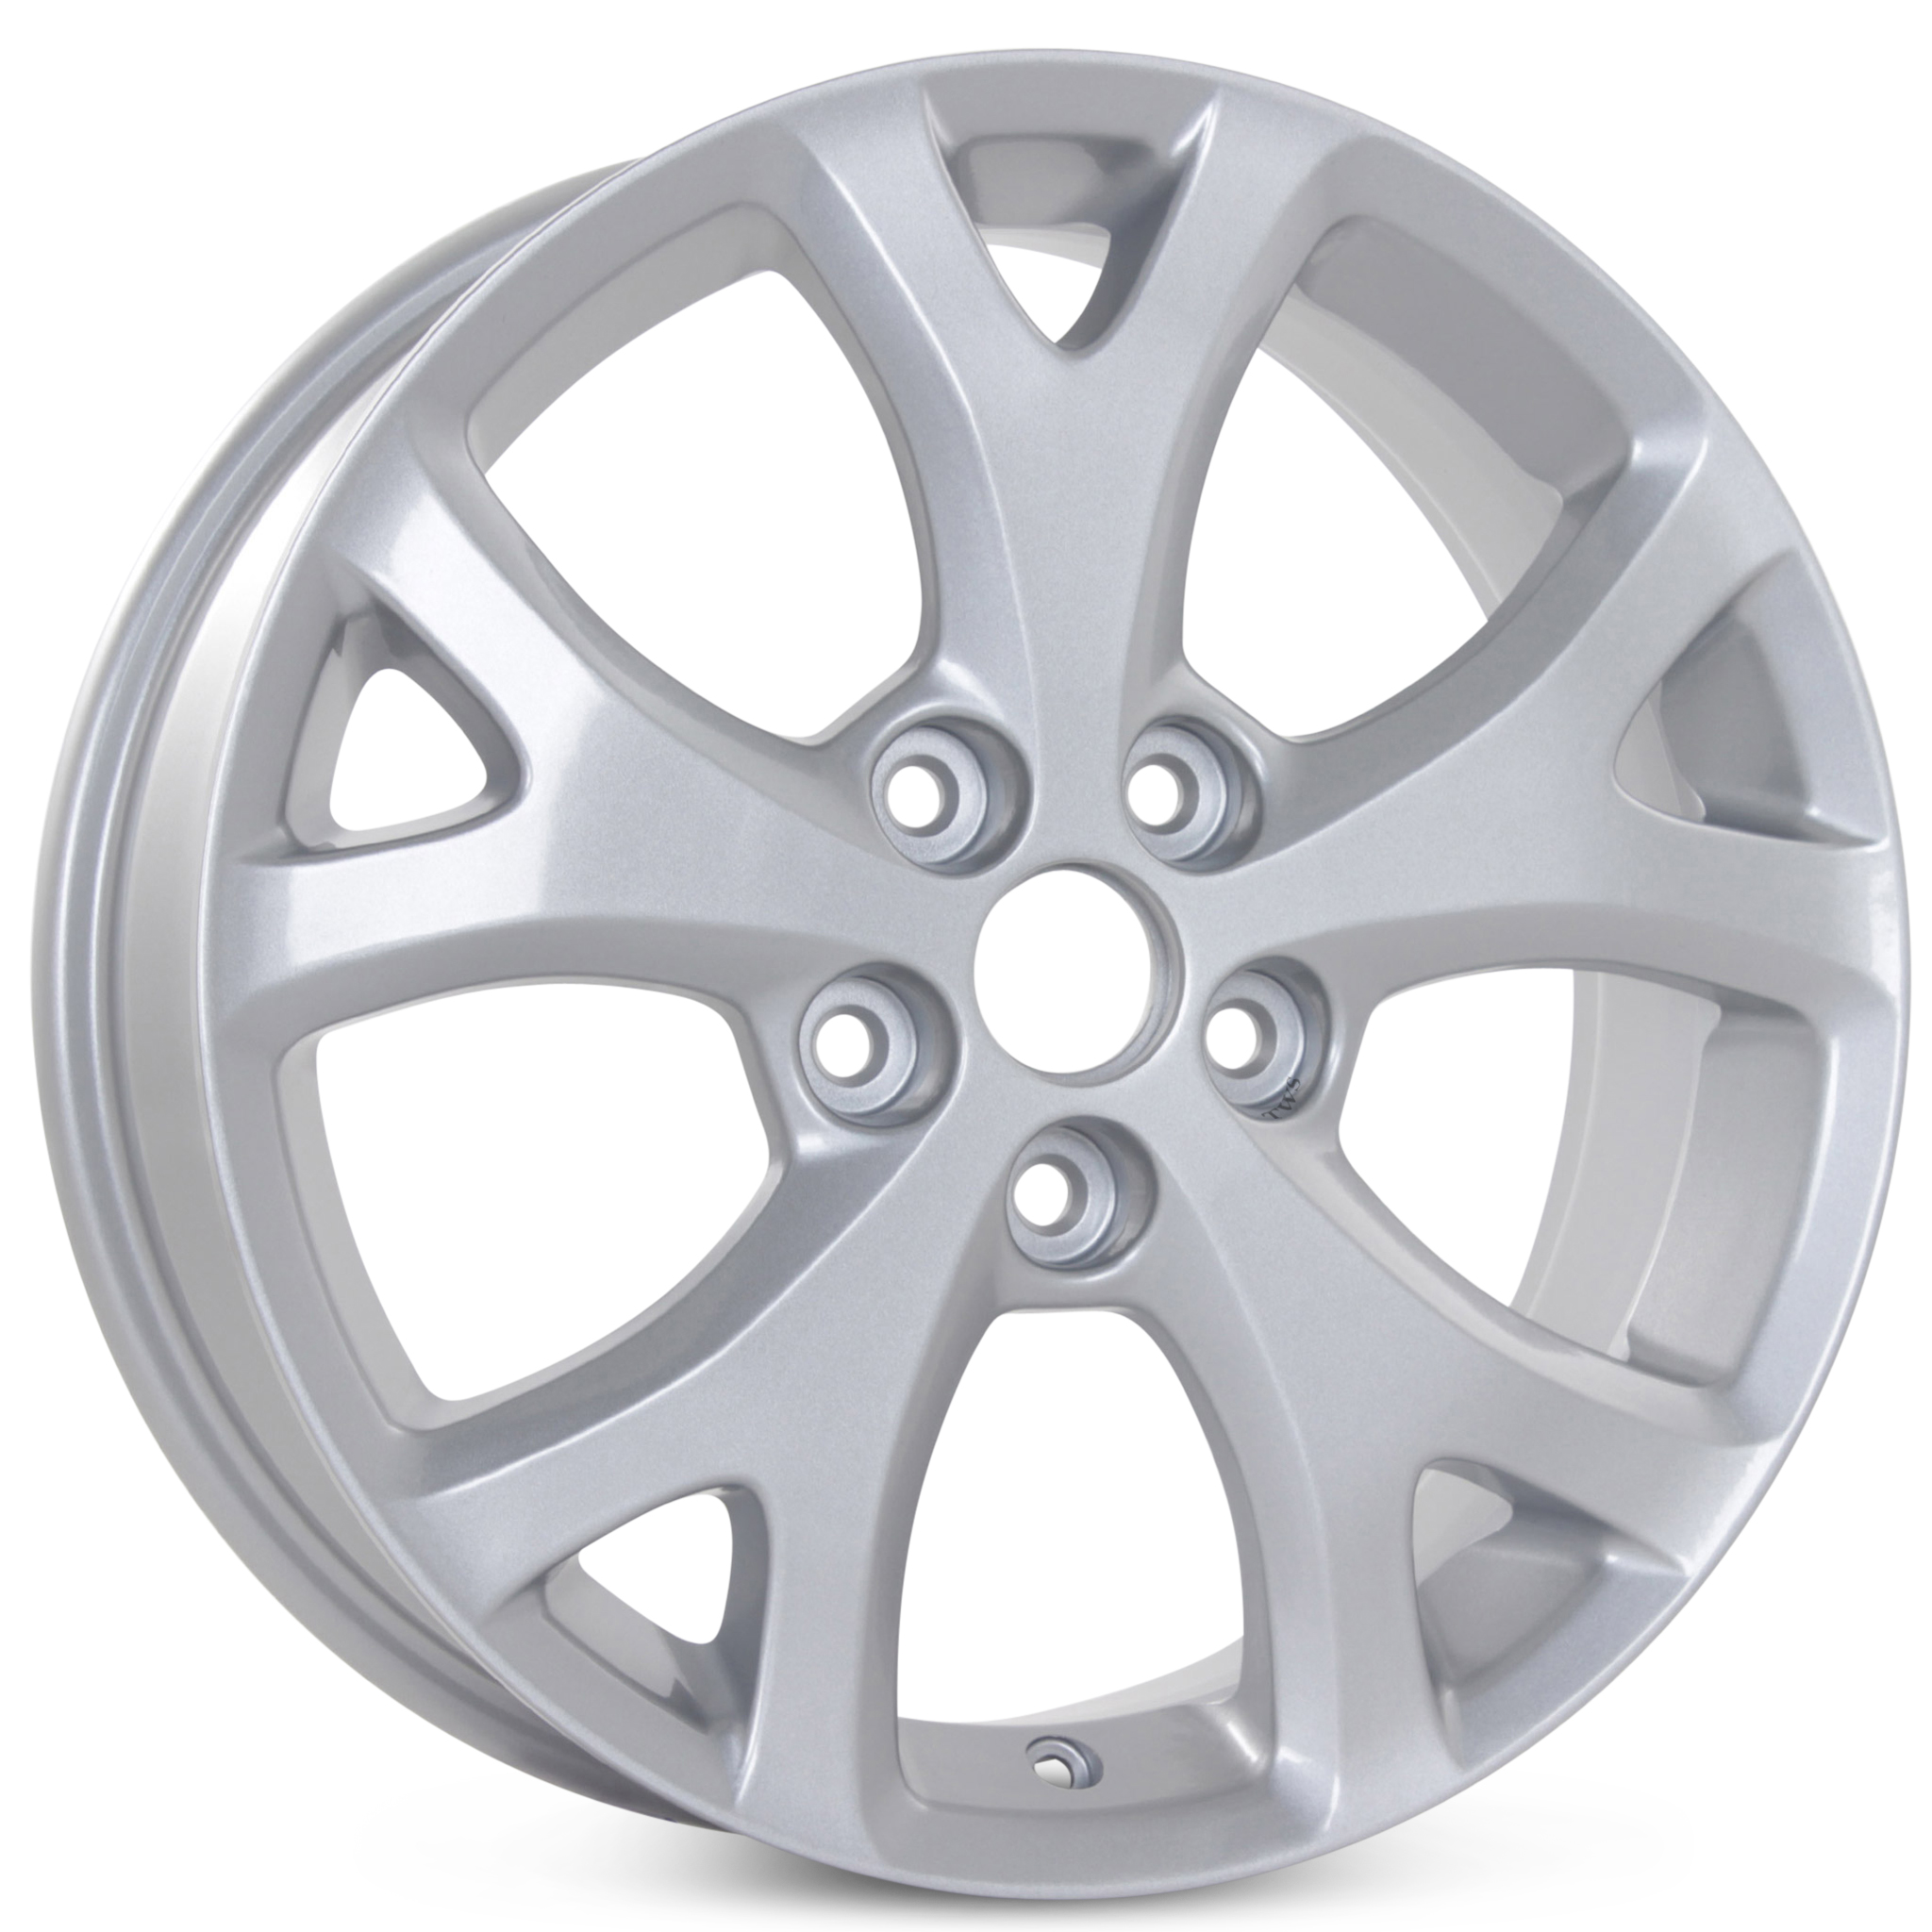 """For Sale 2008 Mazdaspeed 3 Wheels: New 17"""" X 6.5"""" Alloy Replacement Wheel For Mazda 3 2007 2008 2009 Rim 64895"""